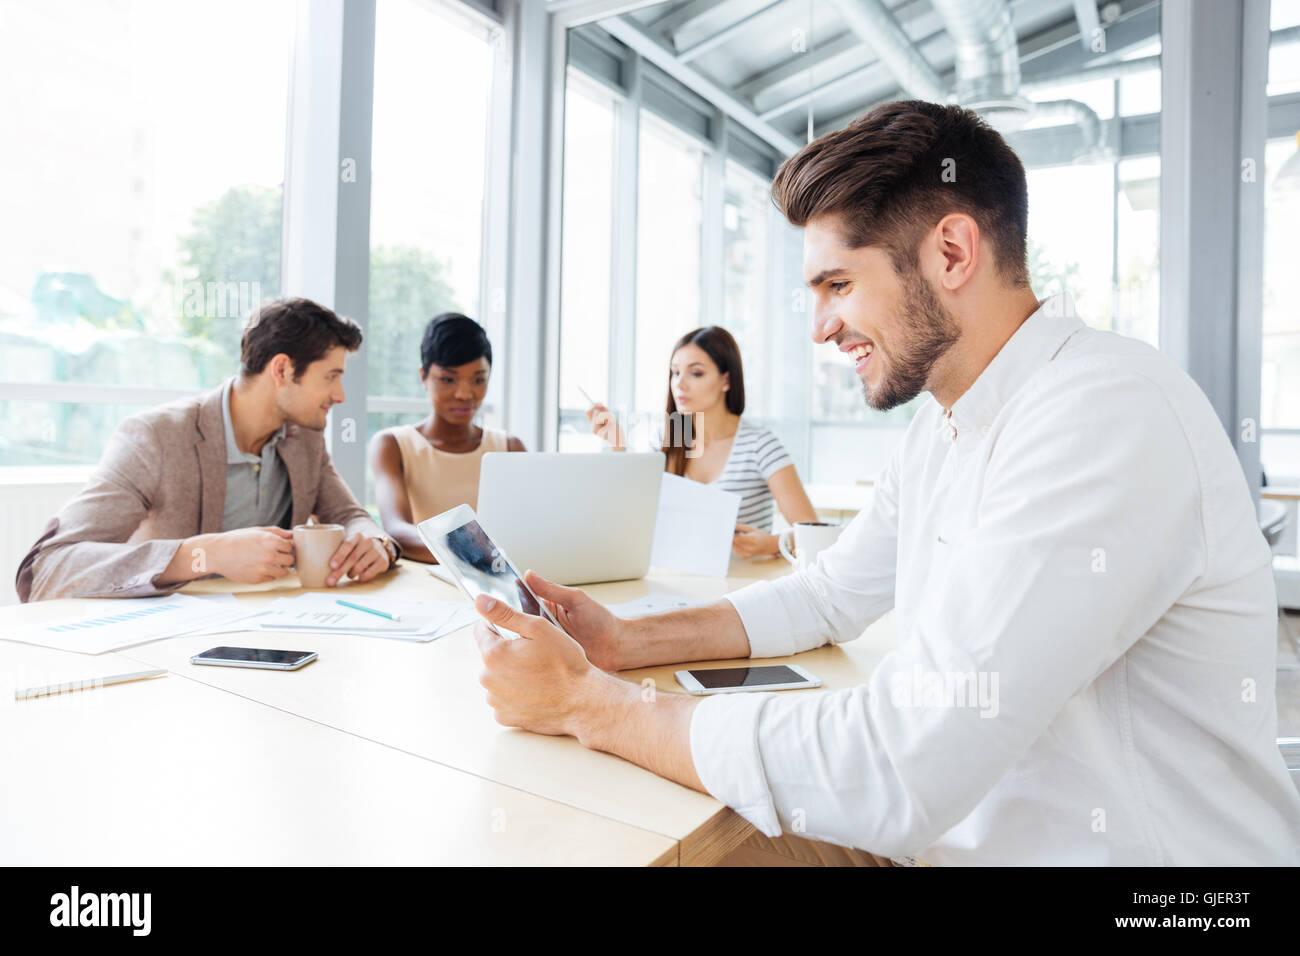 Happy handsome young businessman sitting and using tablet on business meeting - Stock Image